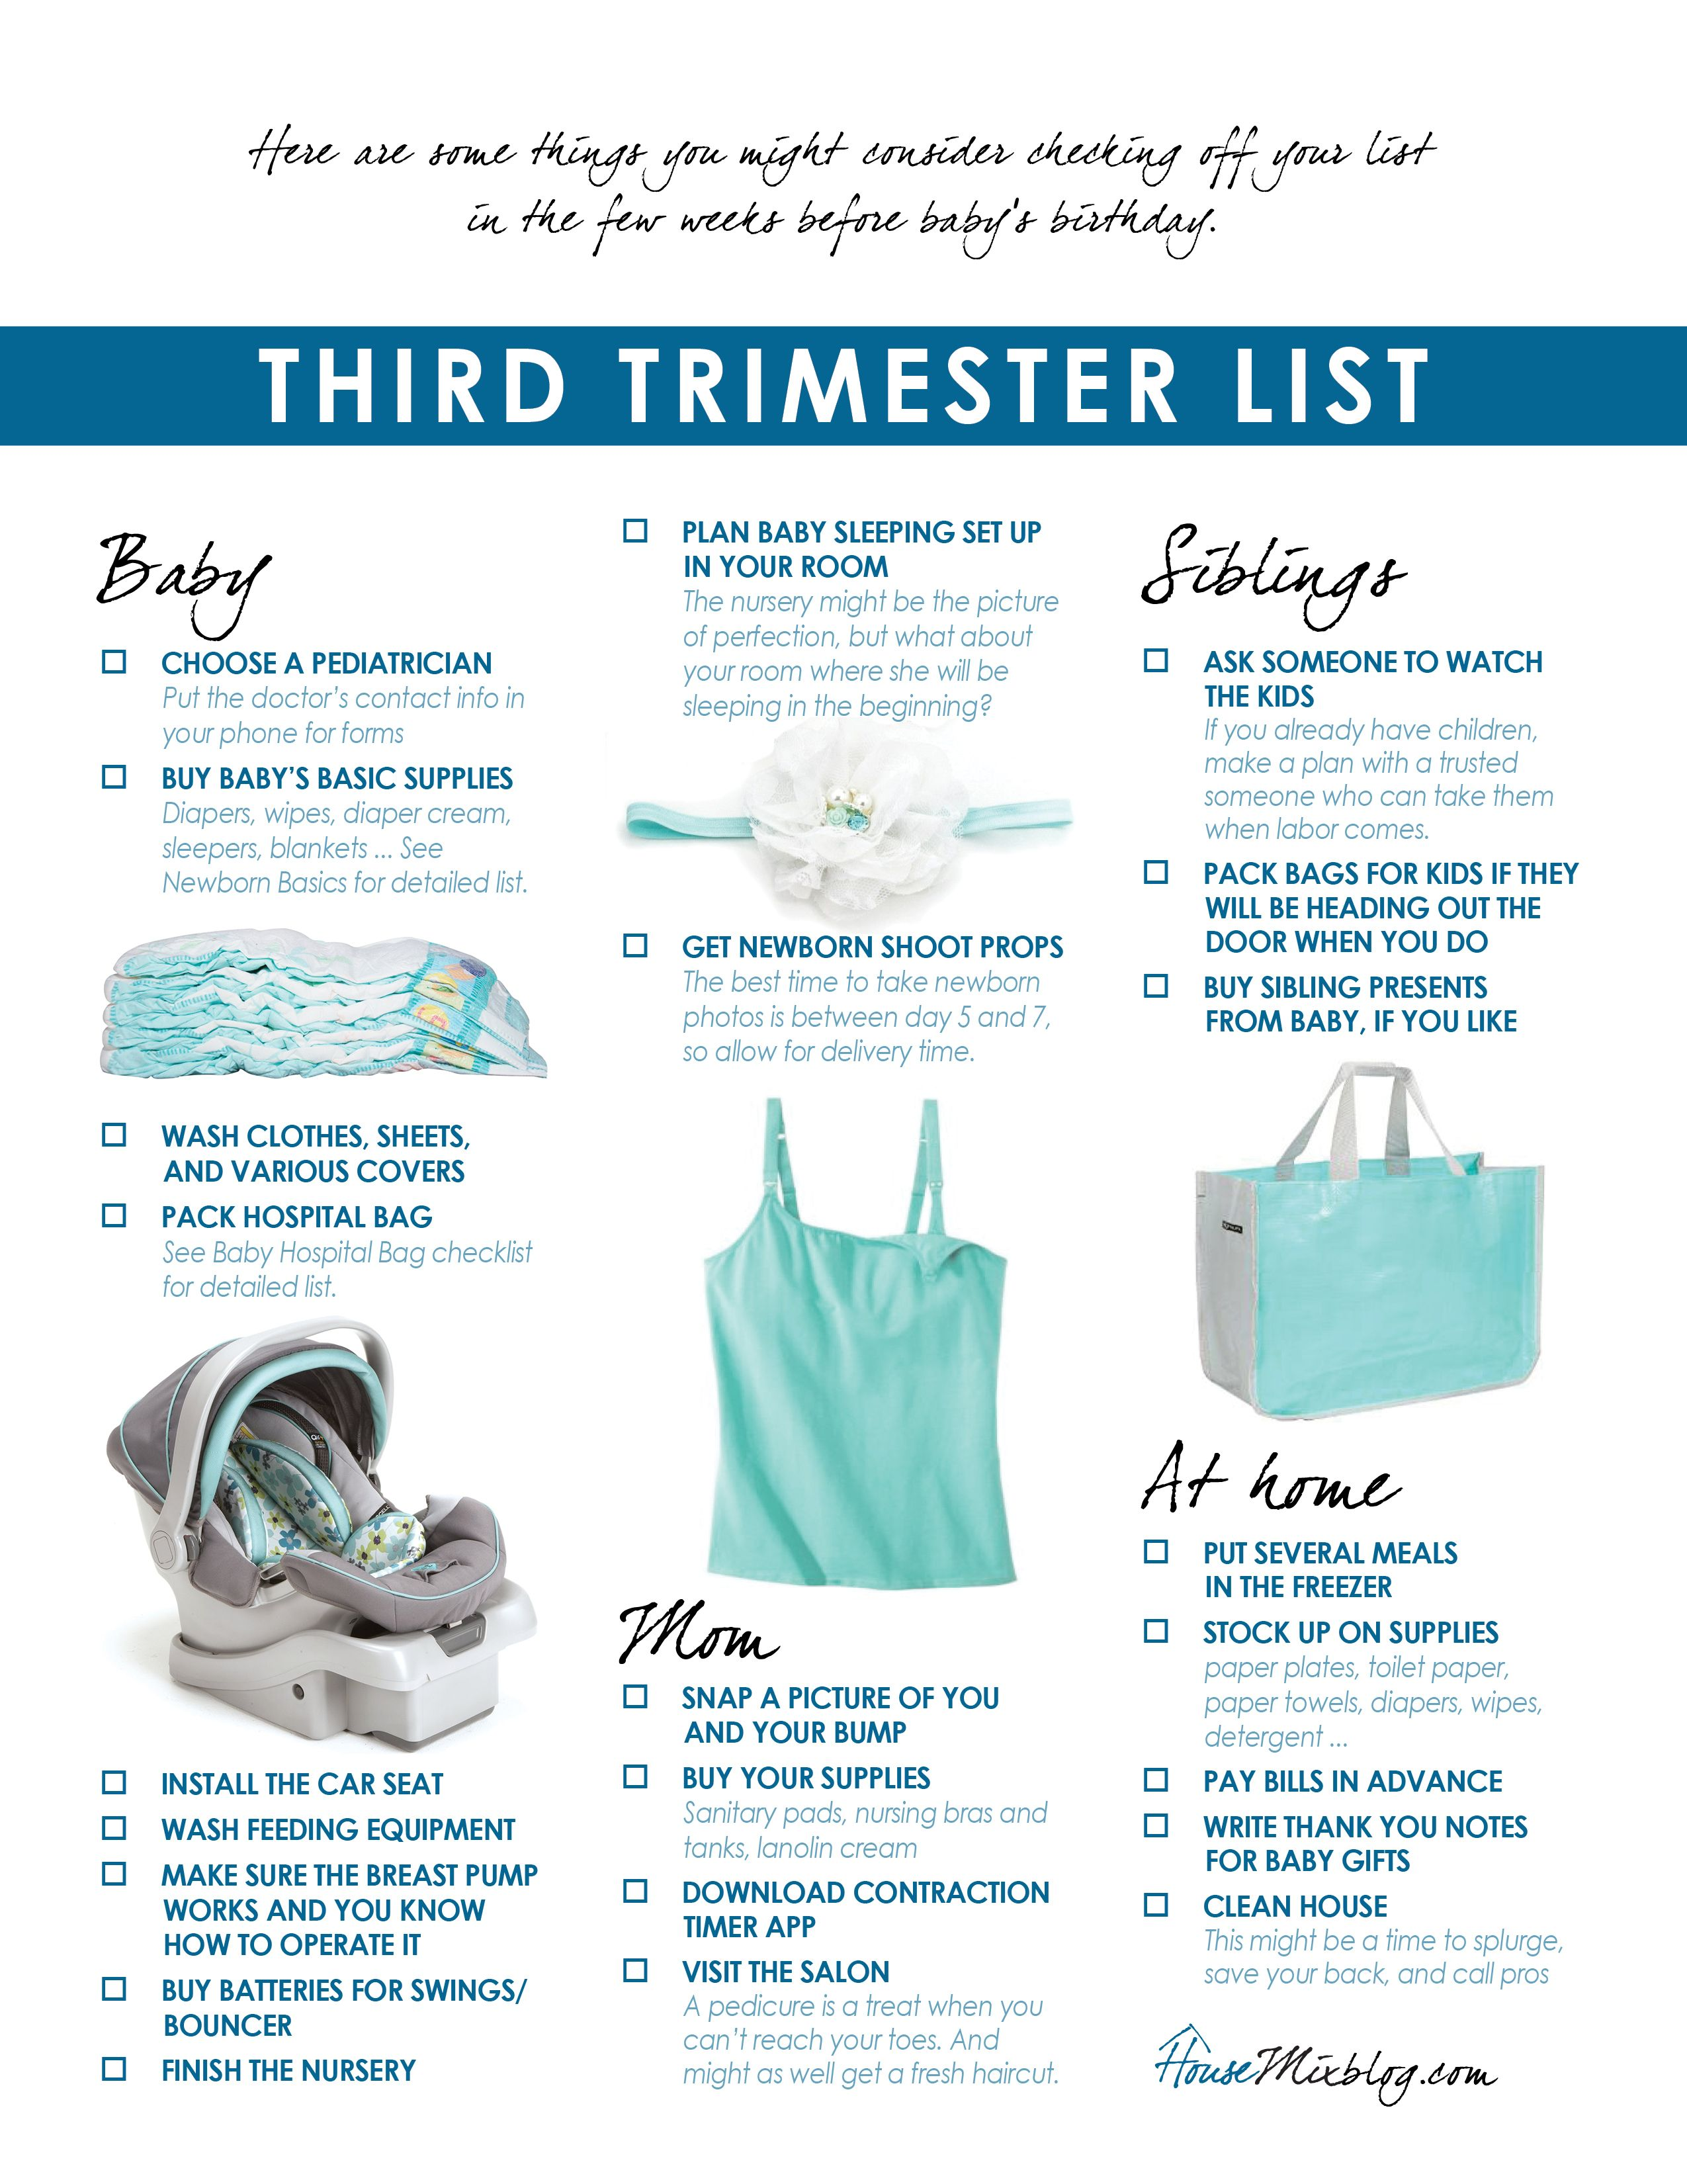 Third-trimester-checklist-printable.jpg 2 550×3 301 пикс